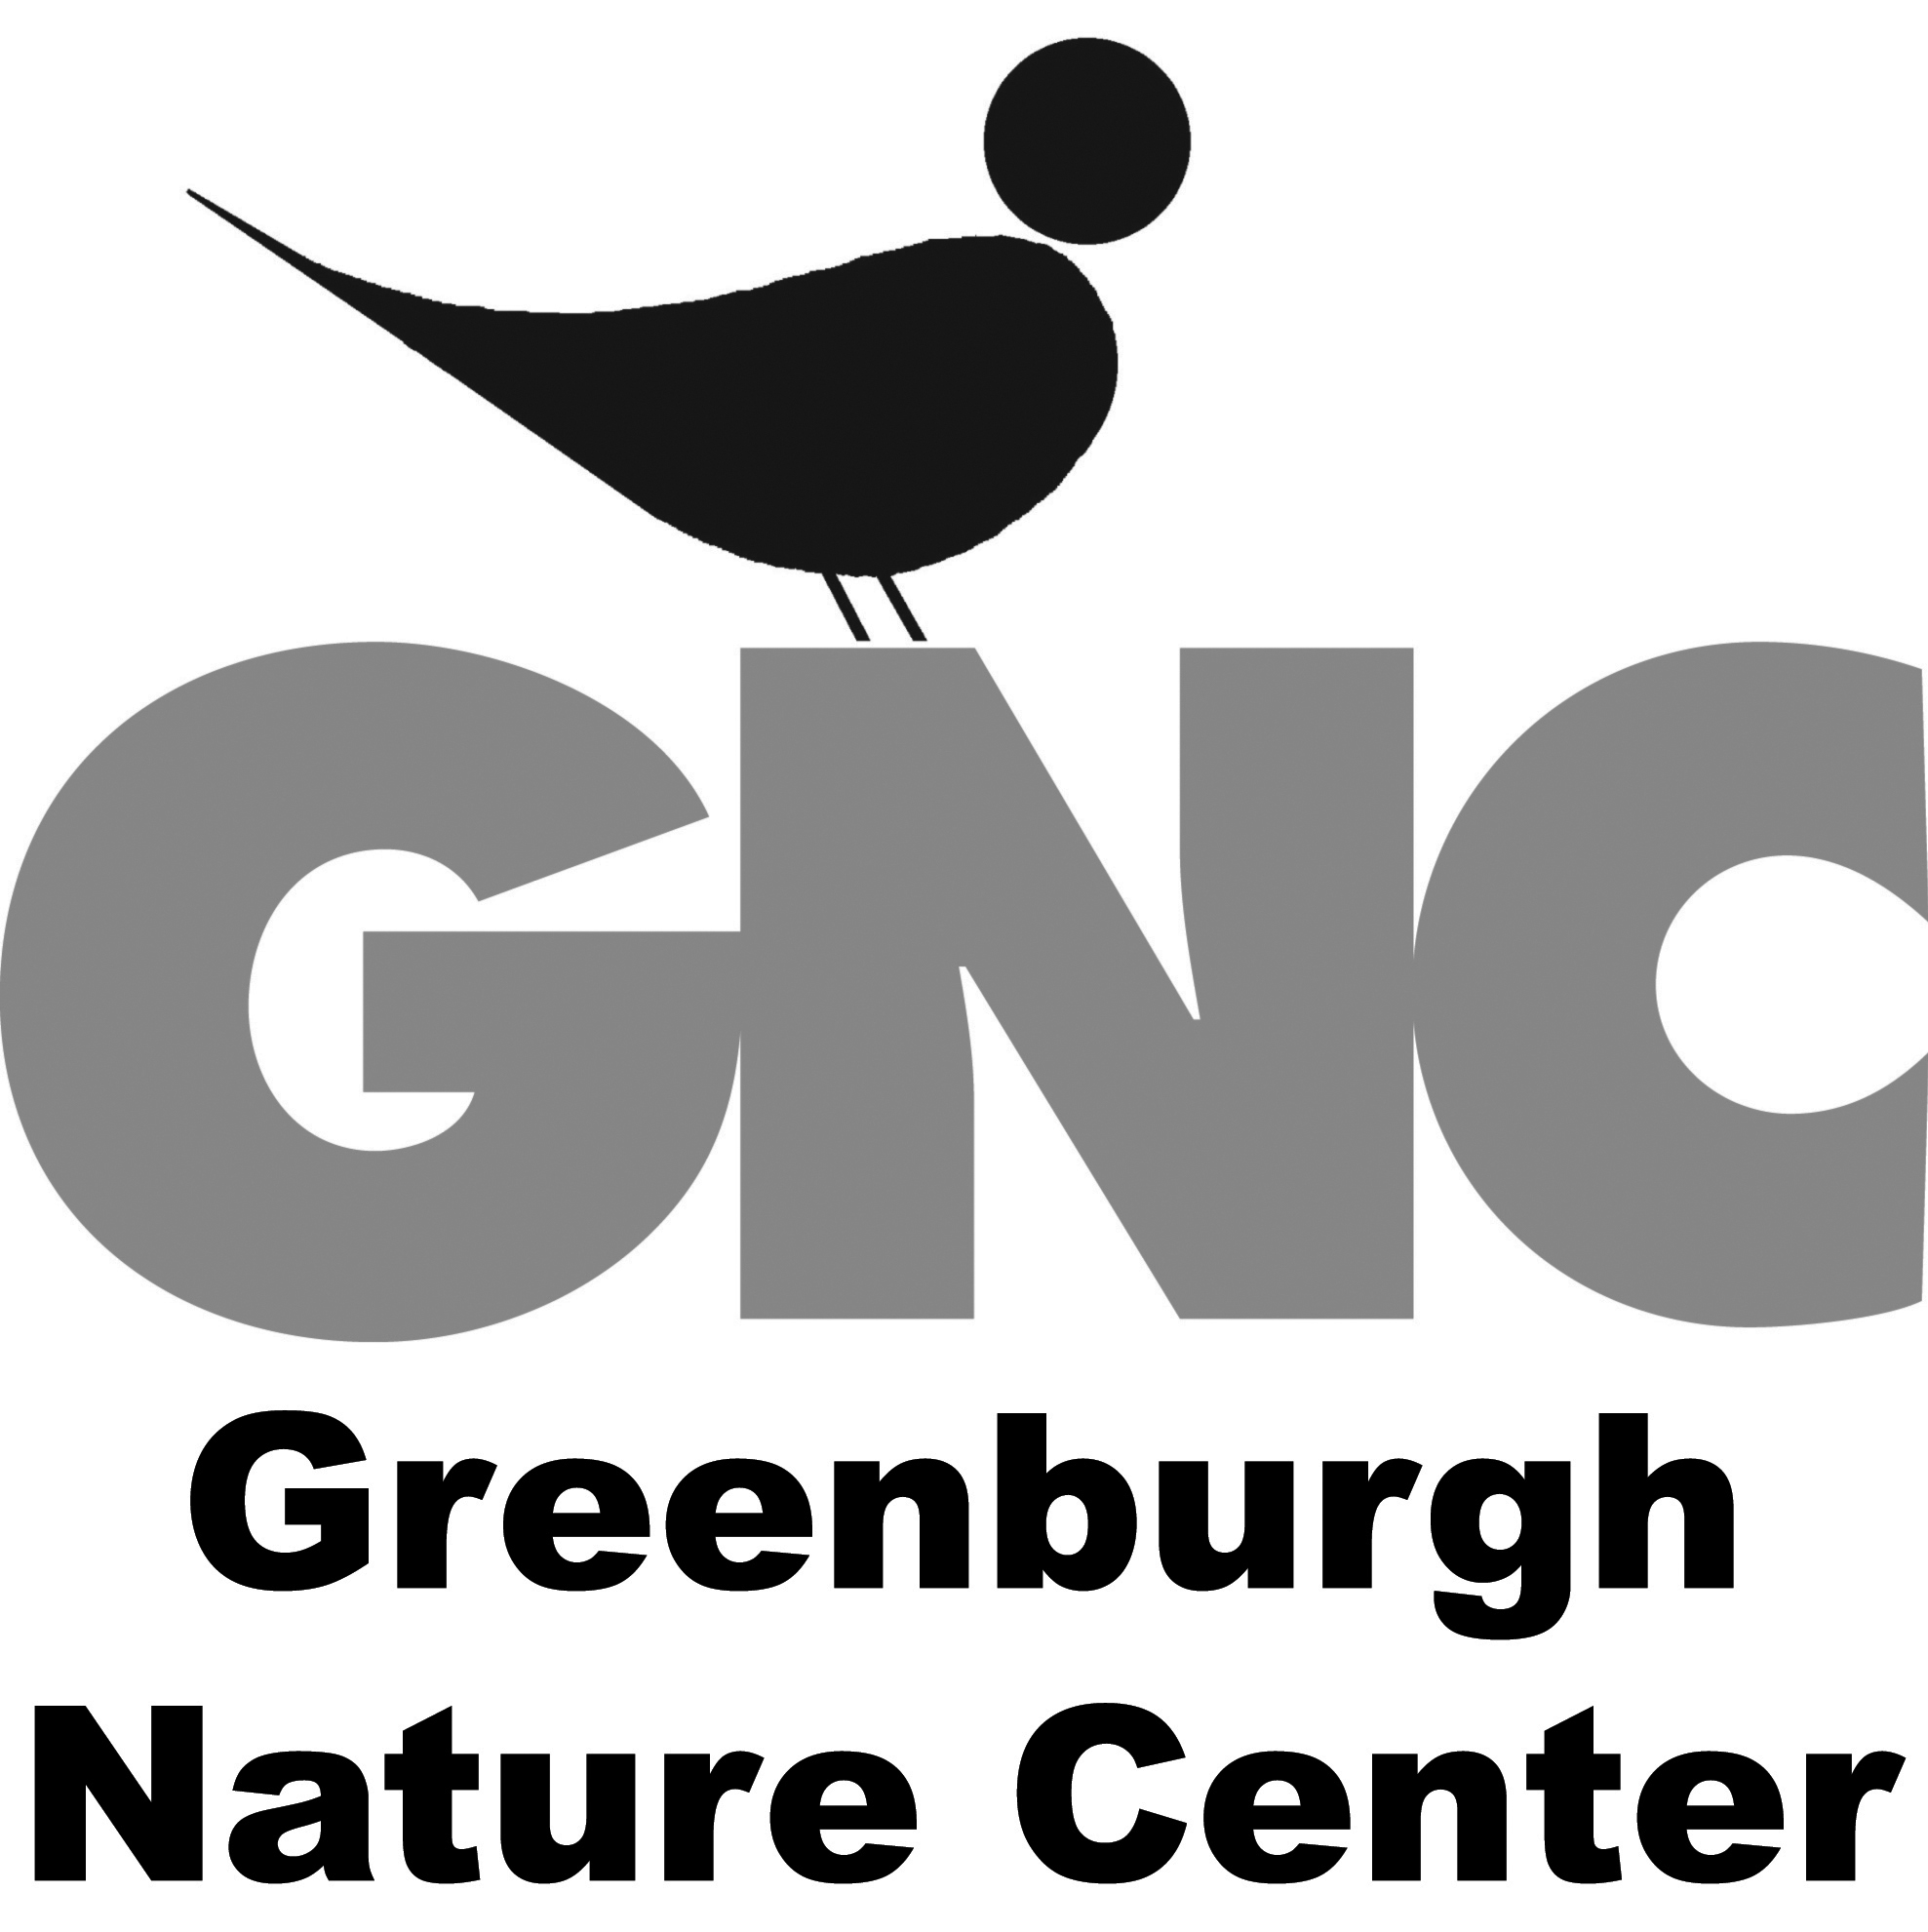 Greenburgh Nature Center